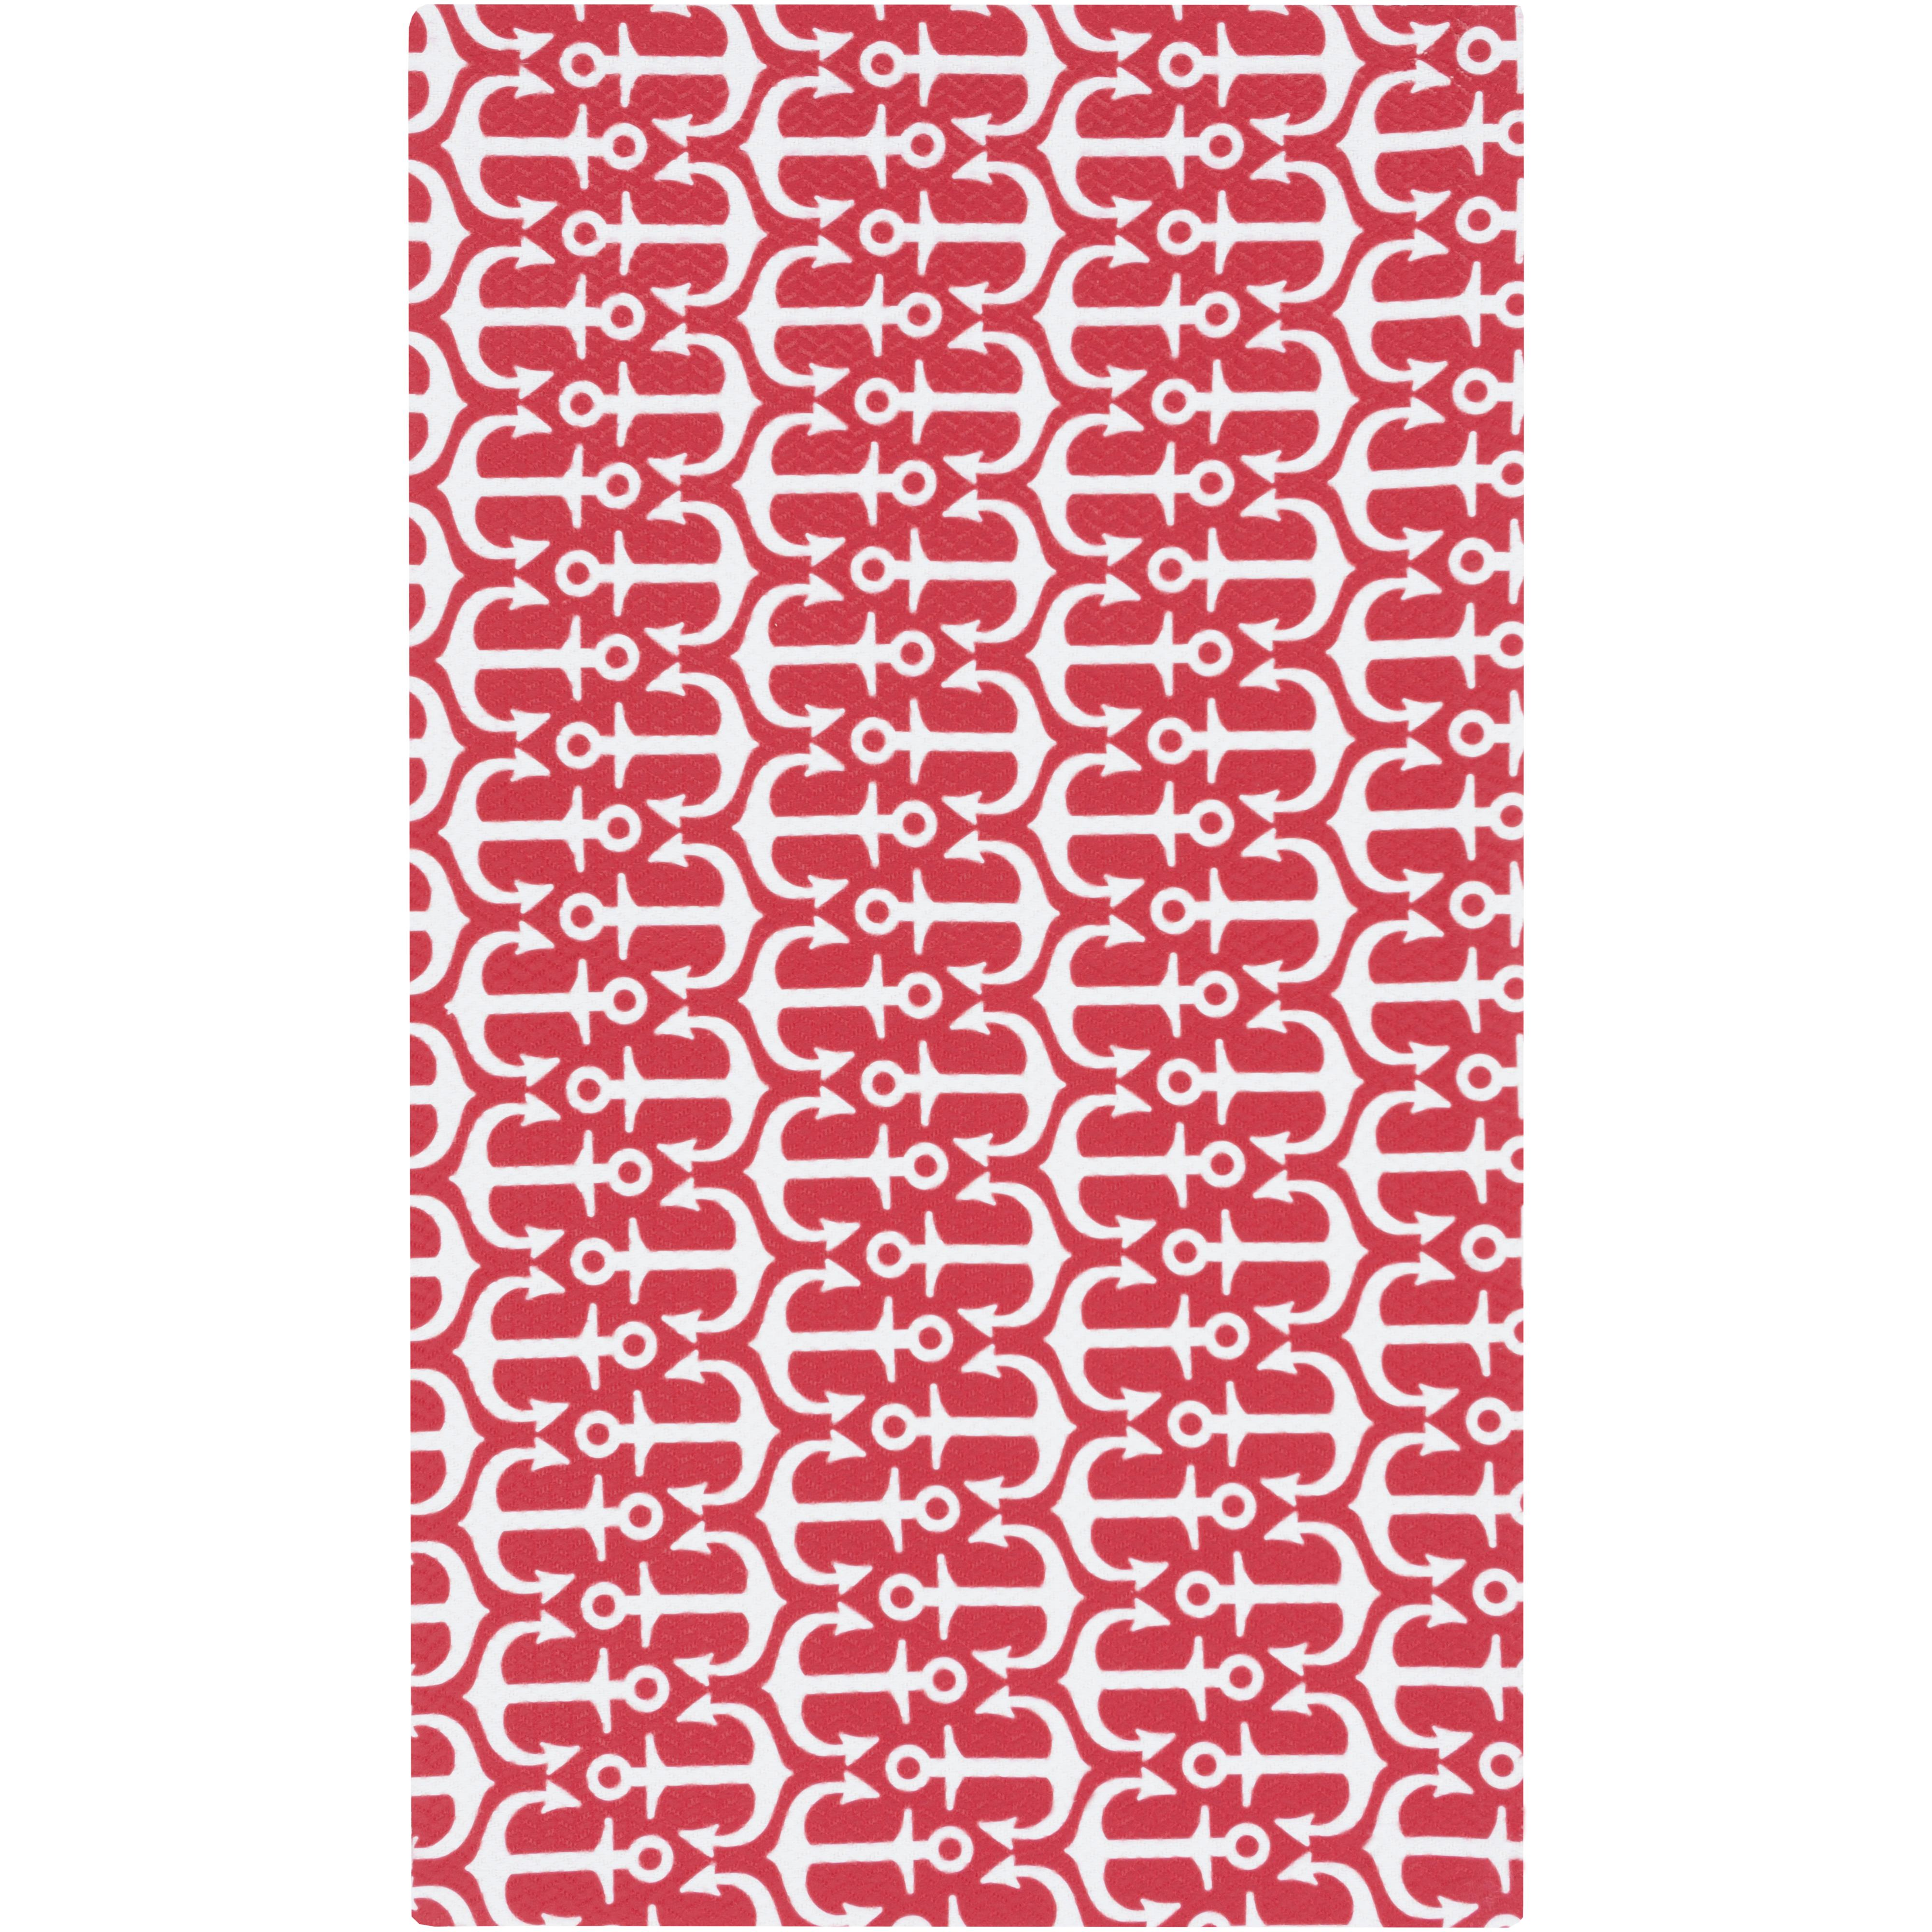 Surya Rugs Cape cod 2' x 3' - Item Number: CCD1030-23